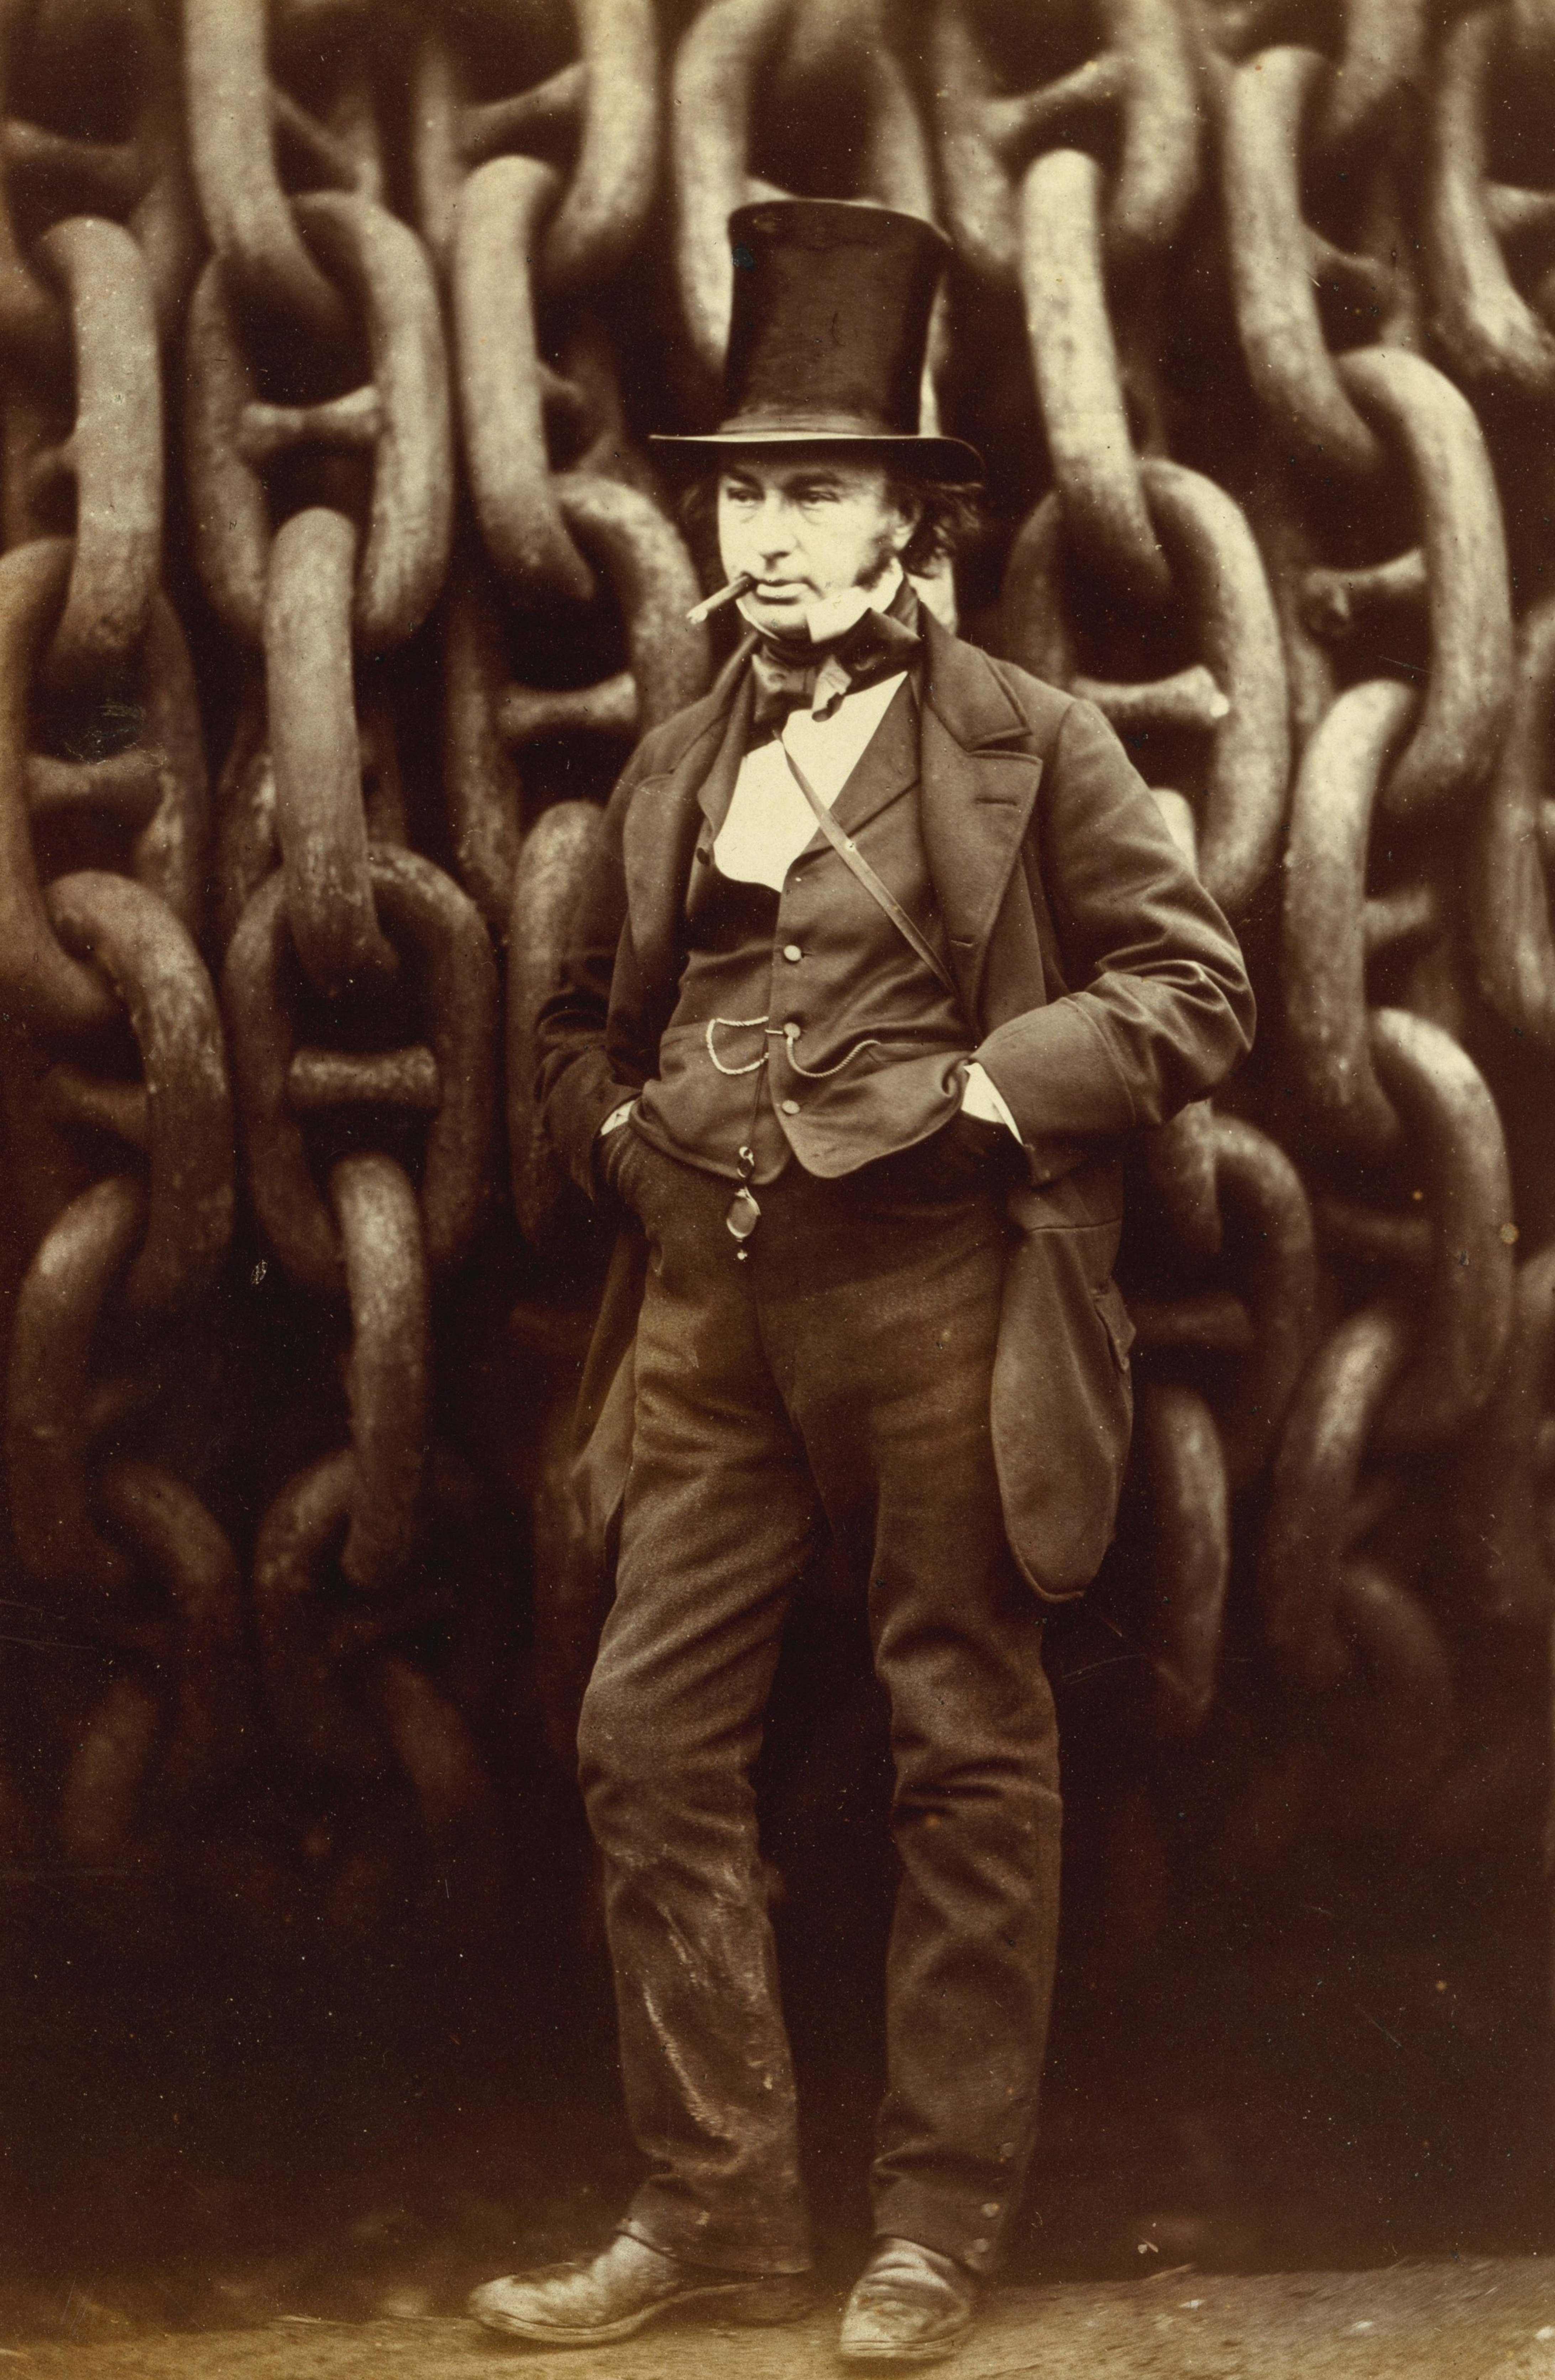 Isambard Kingdom Brunel Standing Before the Launching Chains of the Great Eastern, photograph by Robert Howlett. Now in the collection of the Metropolitan Museum of Art.